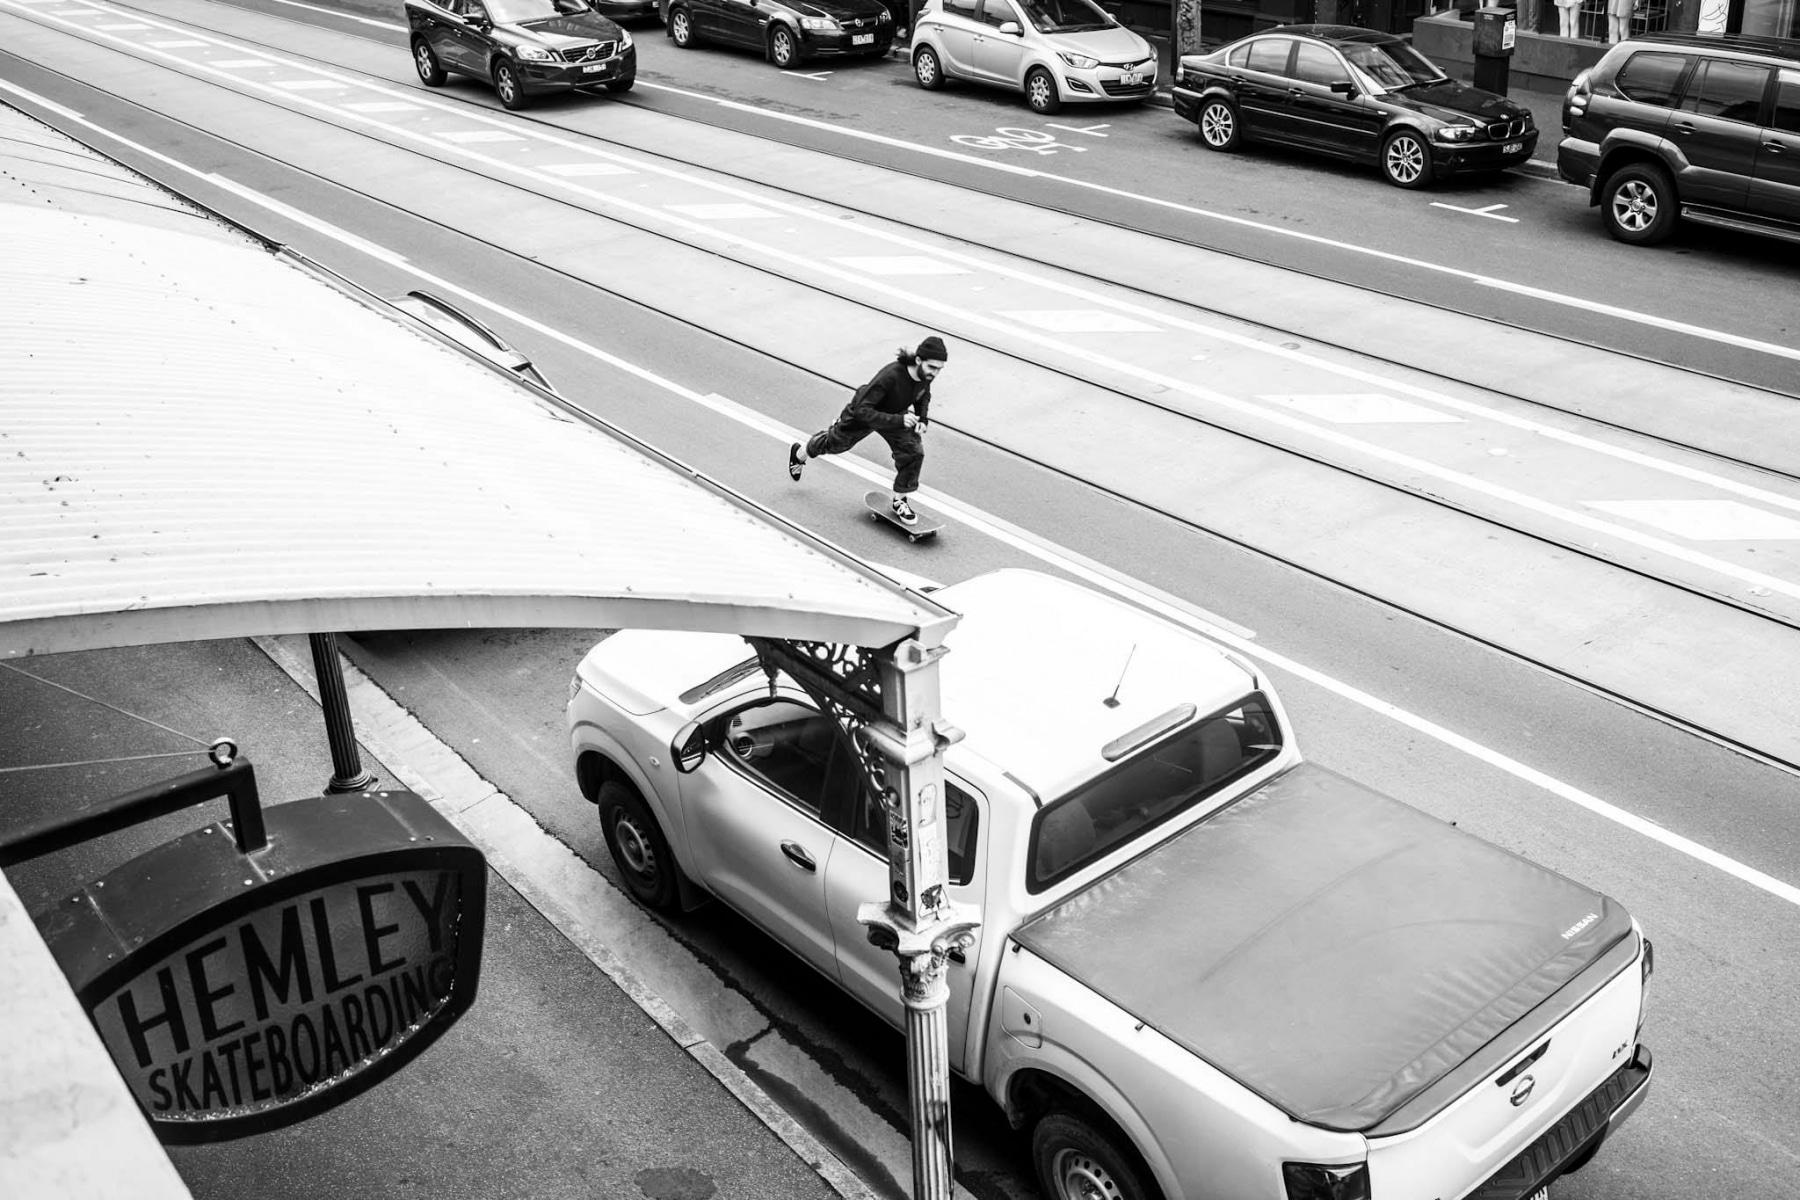 Best And Less Stores Melbourne 9 Best Skateboard Shops In Melbourne Man Of Many